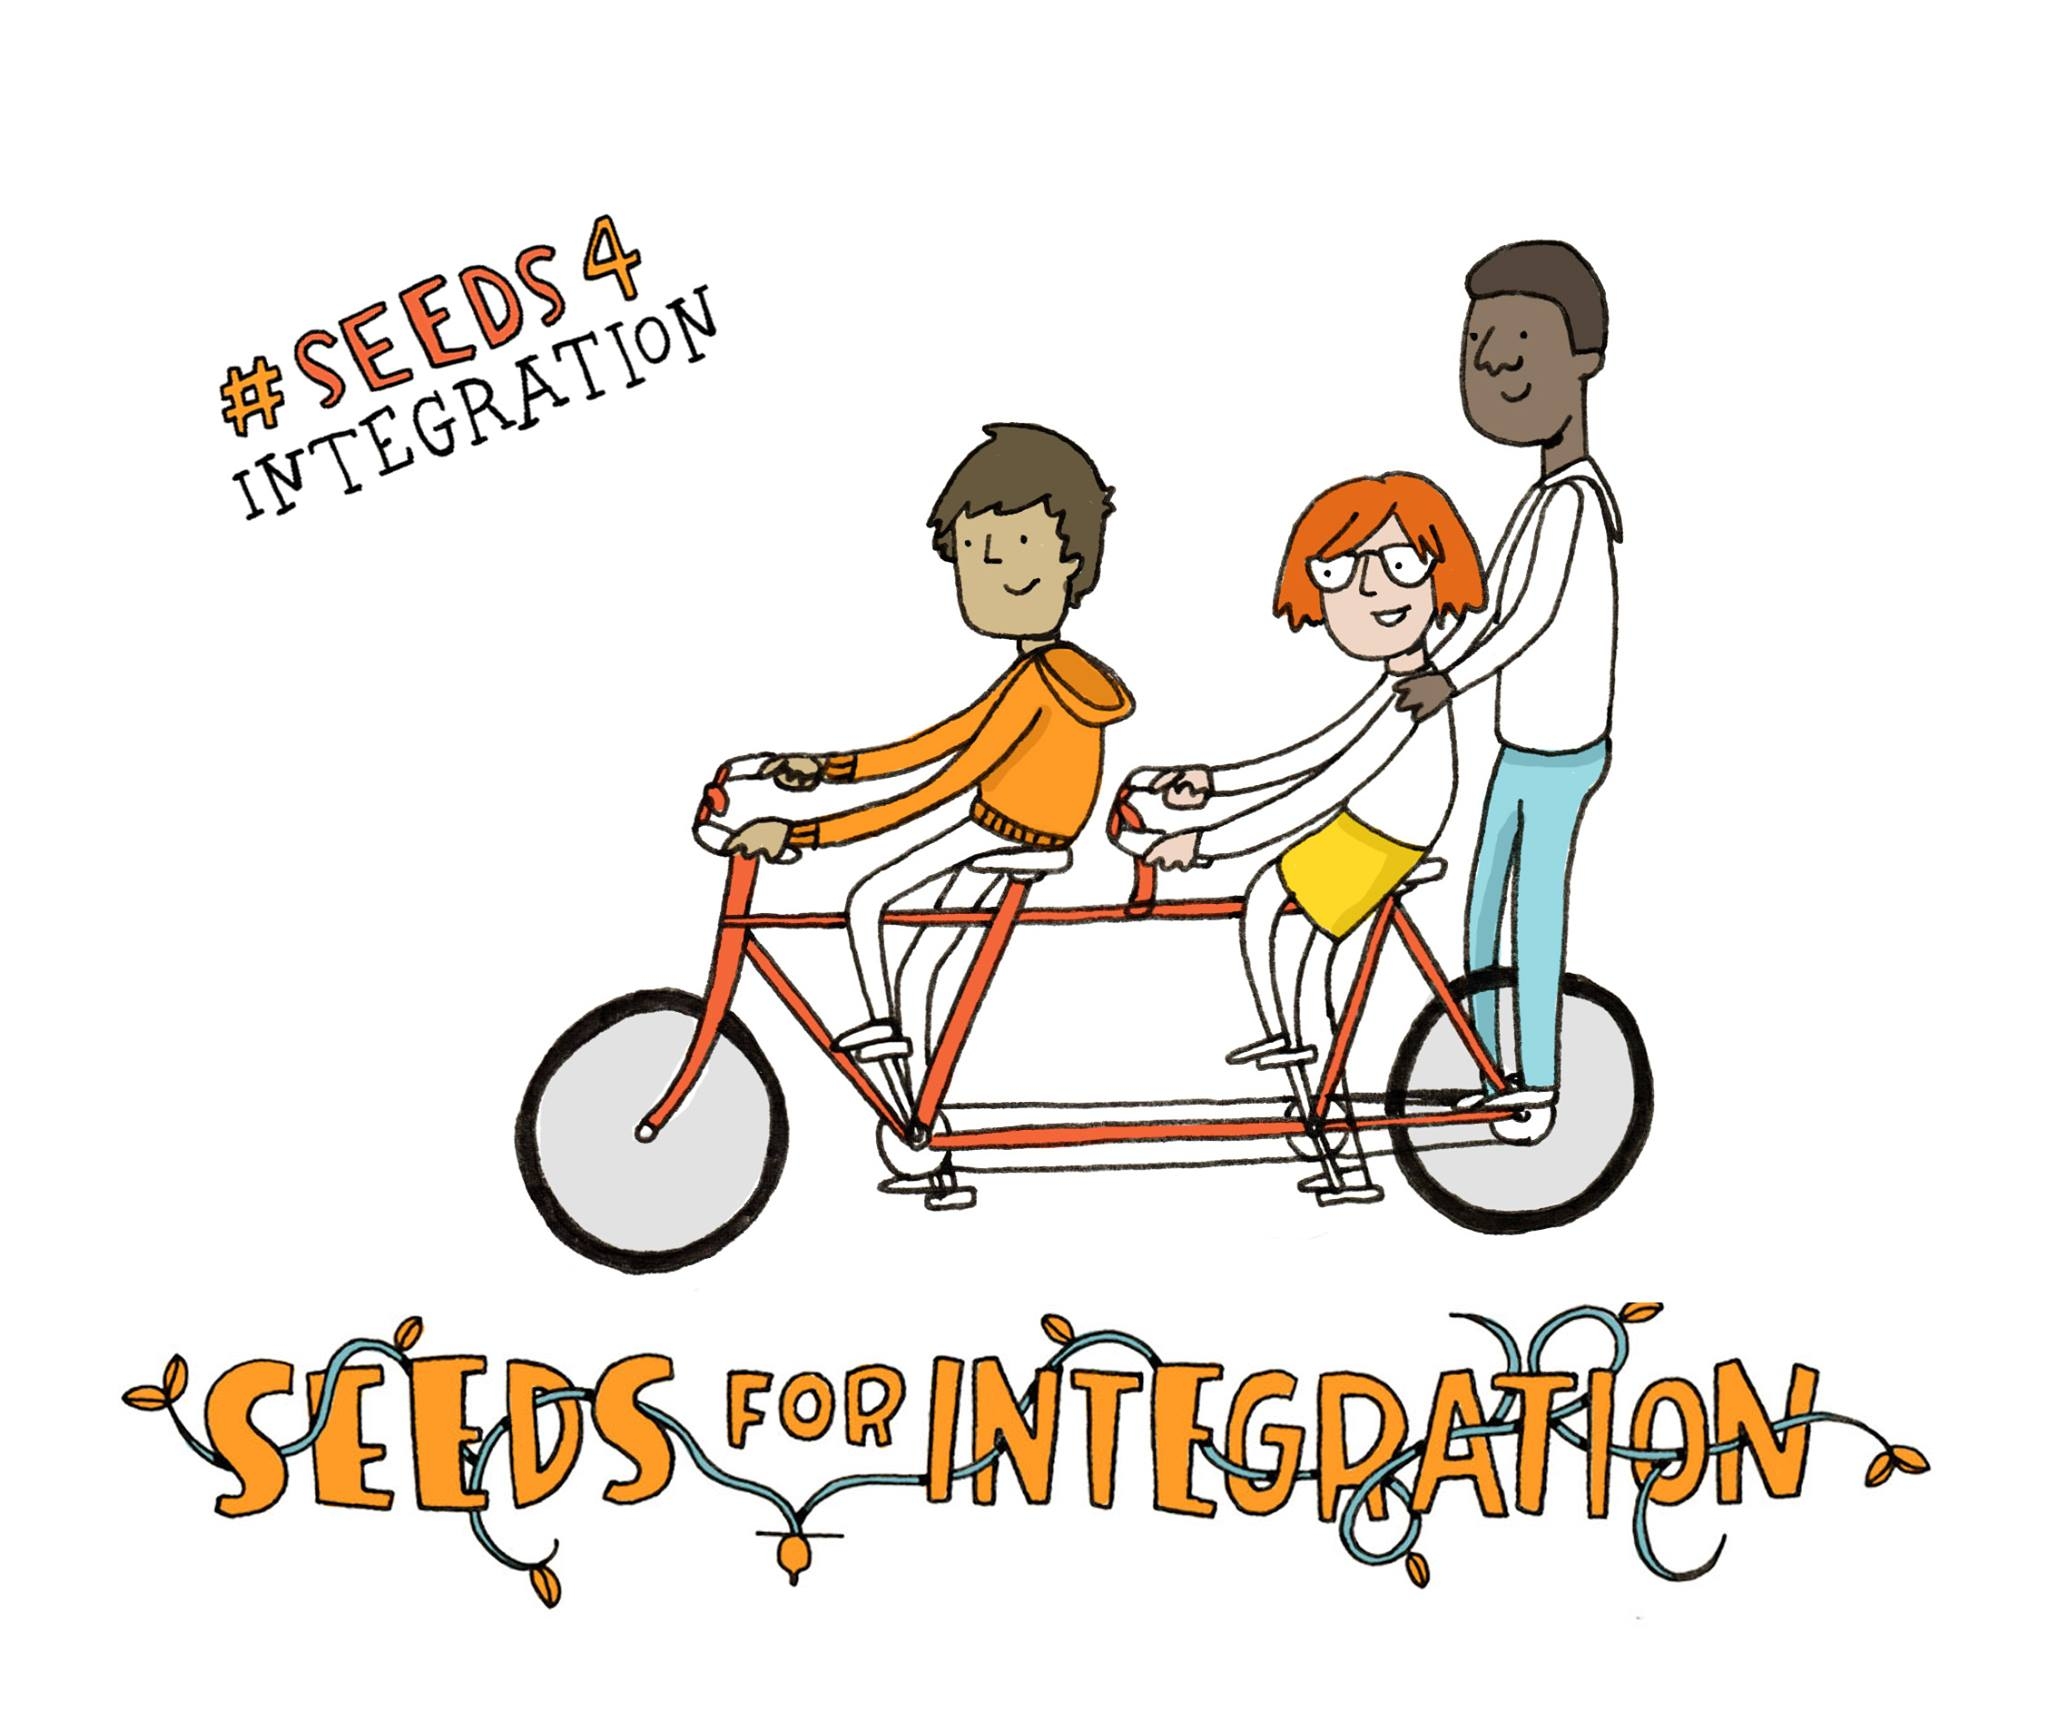 Seeds for Integration - Finanziamenti per l'integrazione di studenti migranti